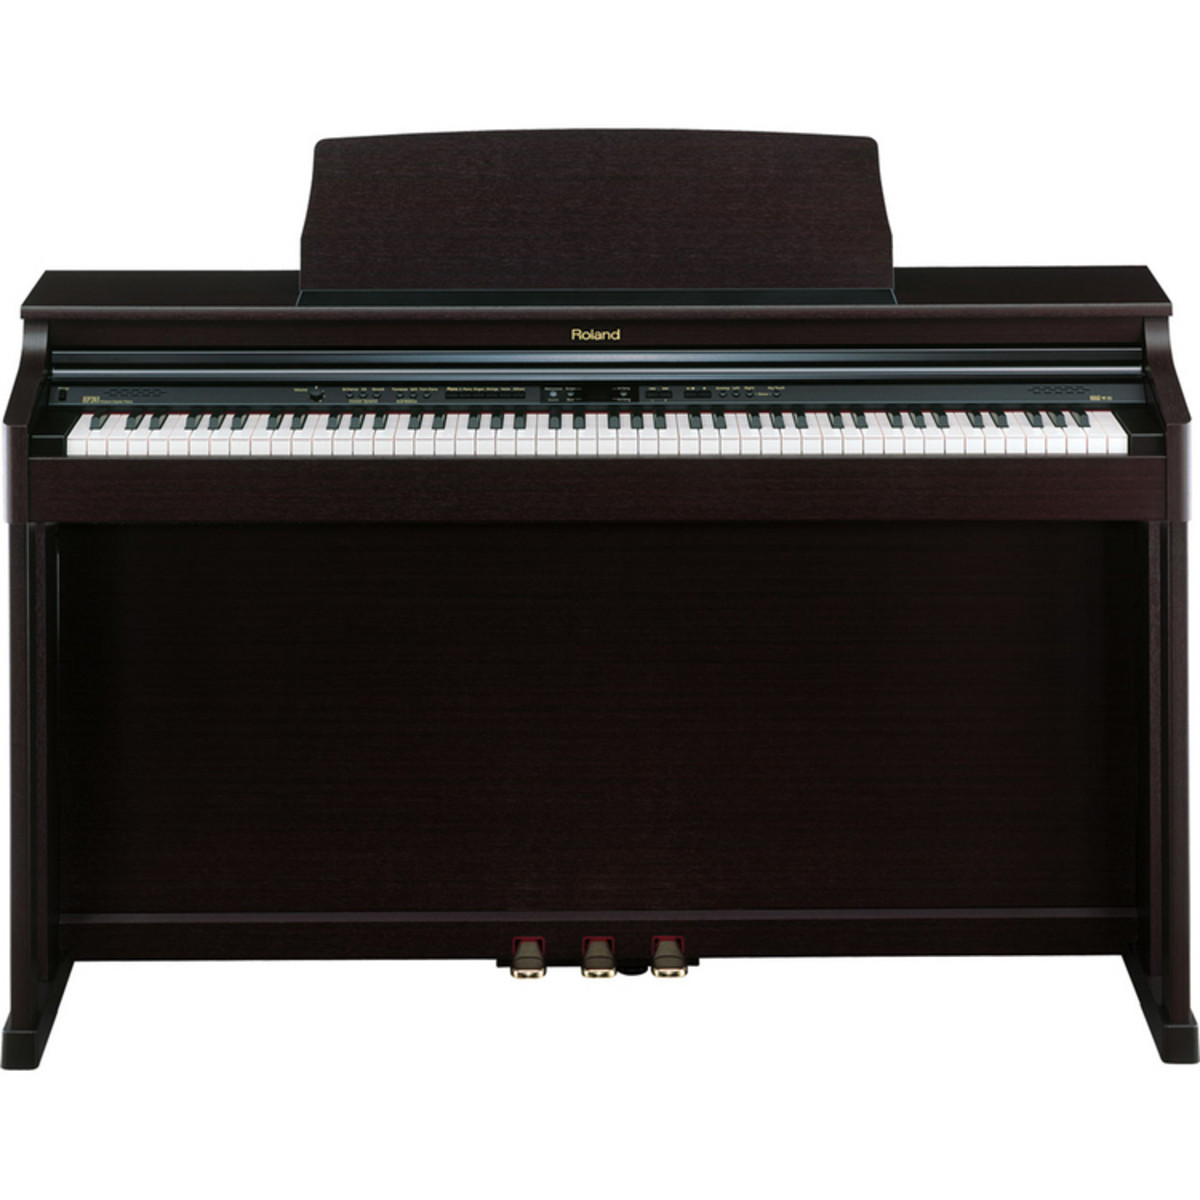 roland hp 203 digital piano rosewood at gear4music. Black Bedroom Furniture Sets. Home Design Ideas